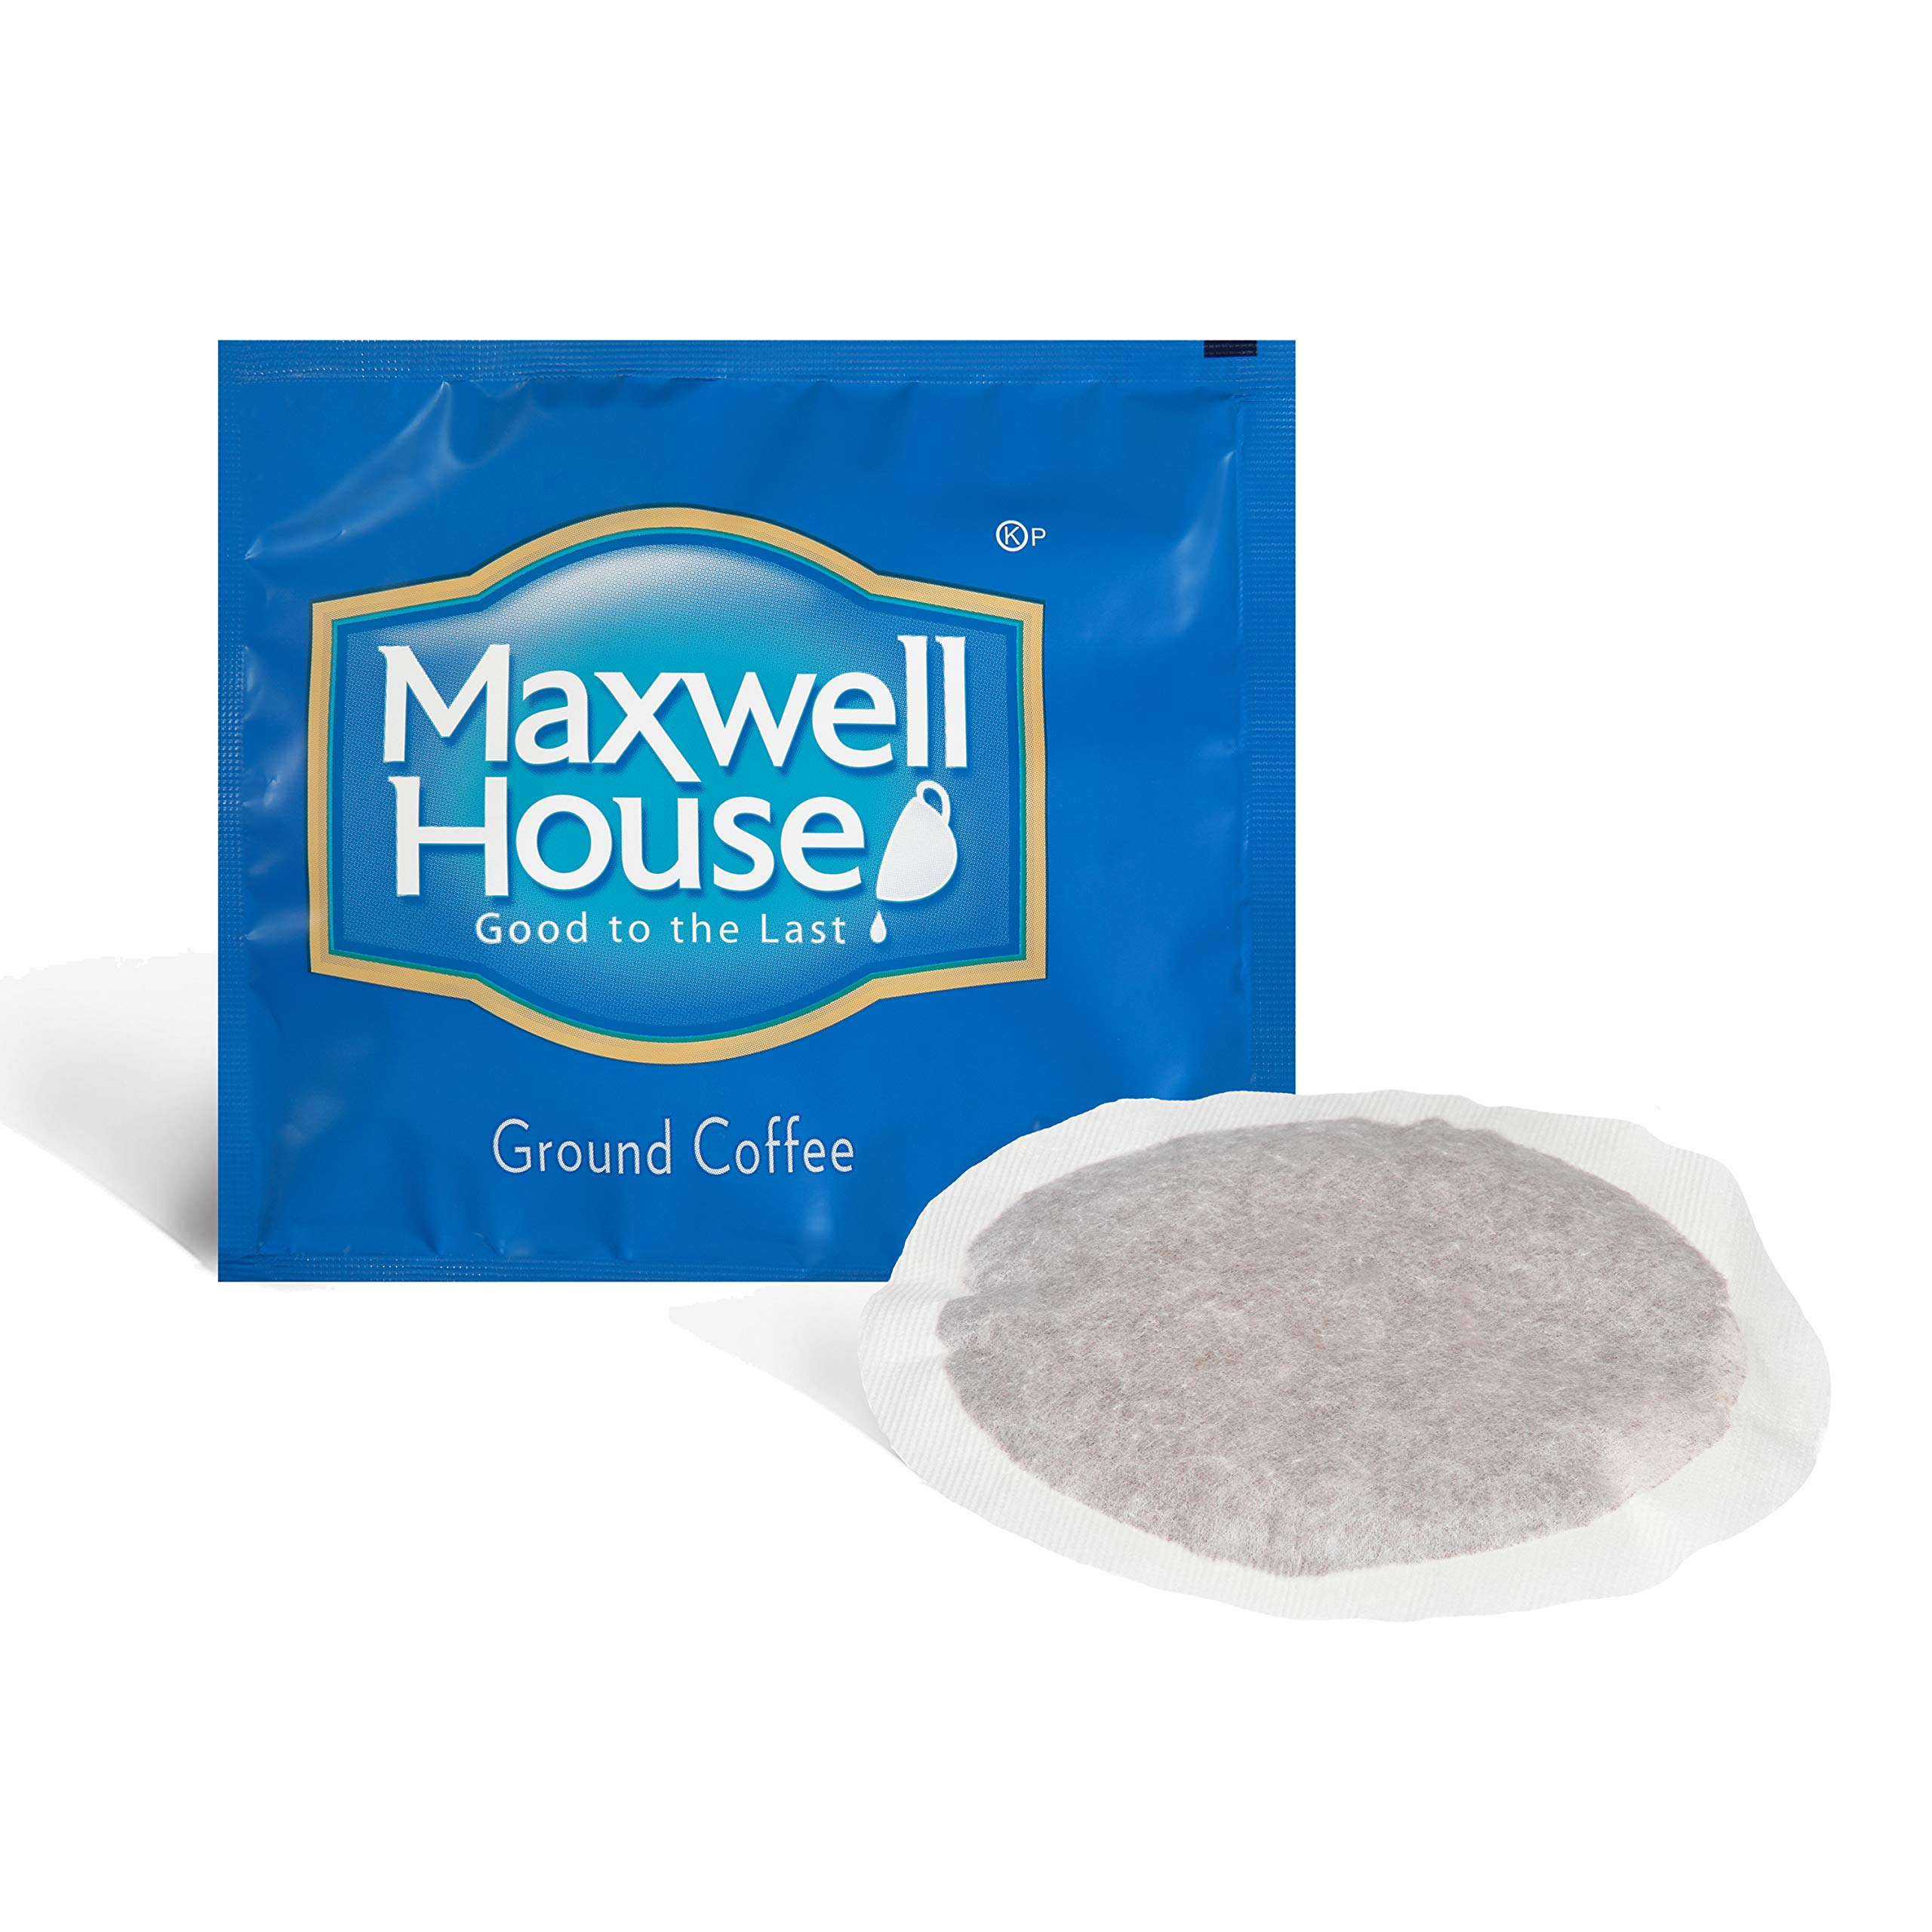 Maxwell House Ground Coffee (0.7 oz Bags, Pack of 100) by MAXWELL HOUSE